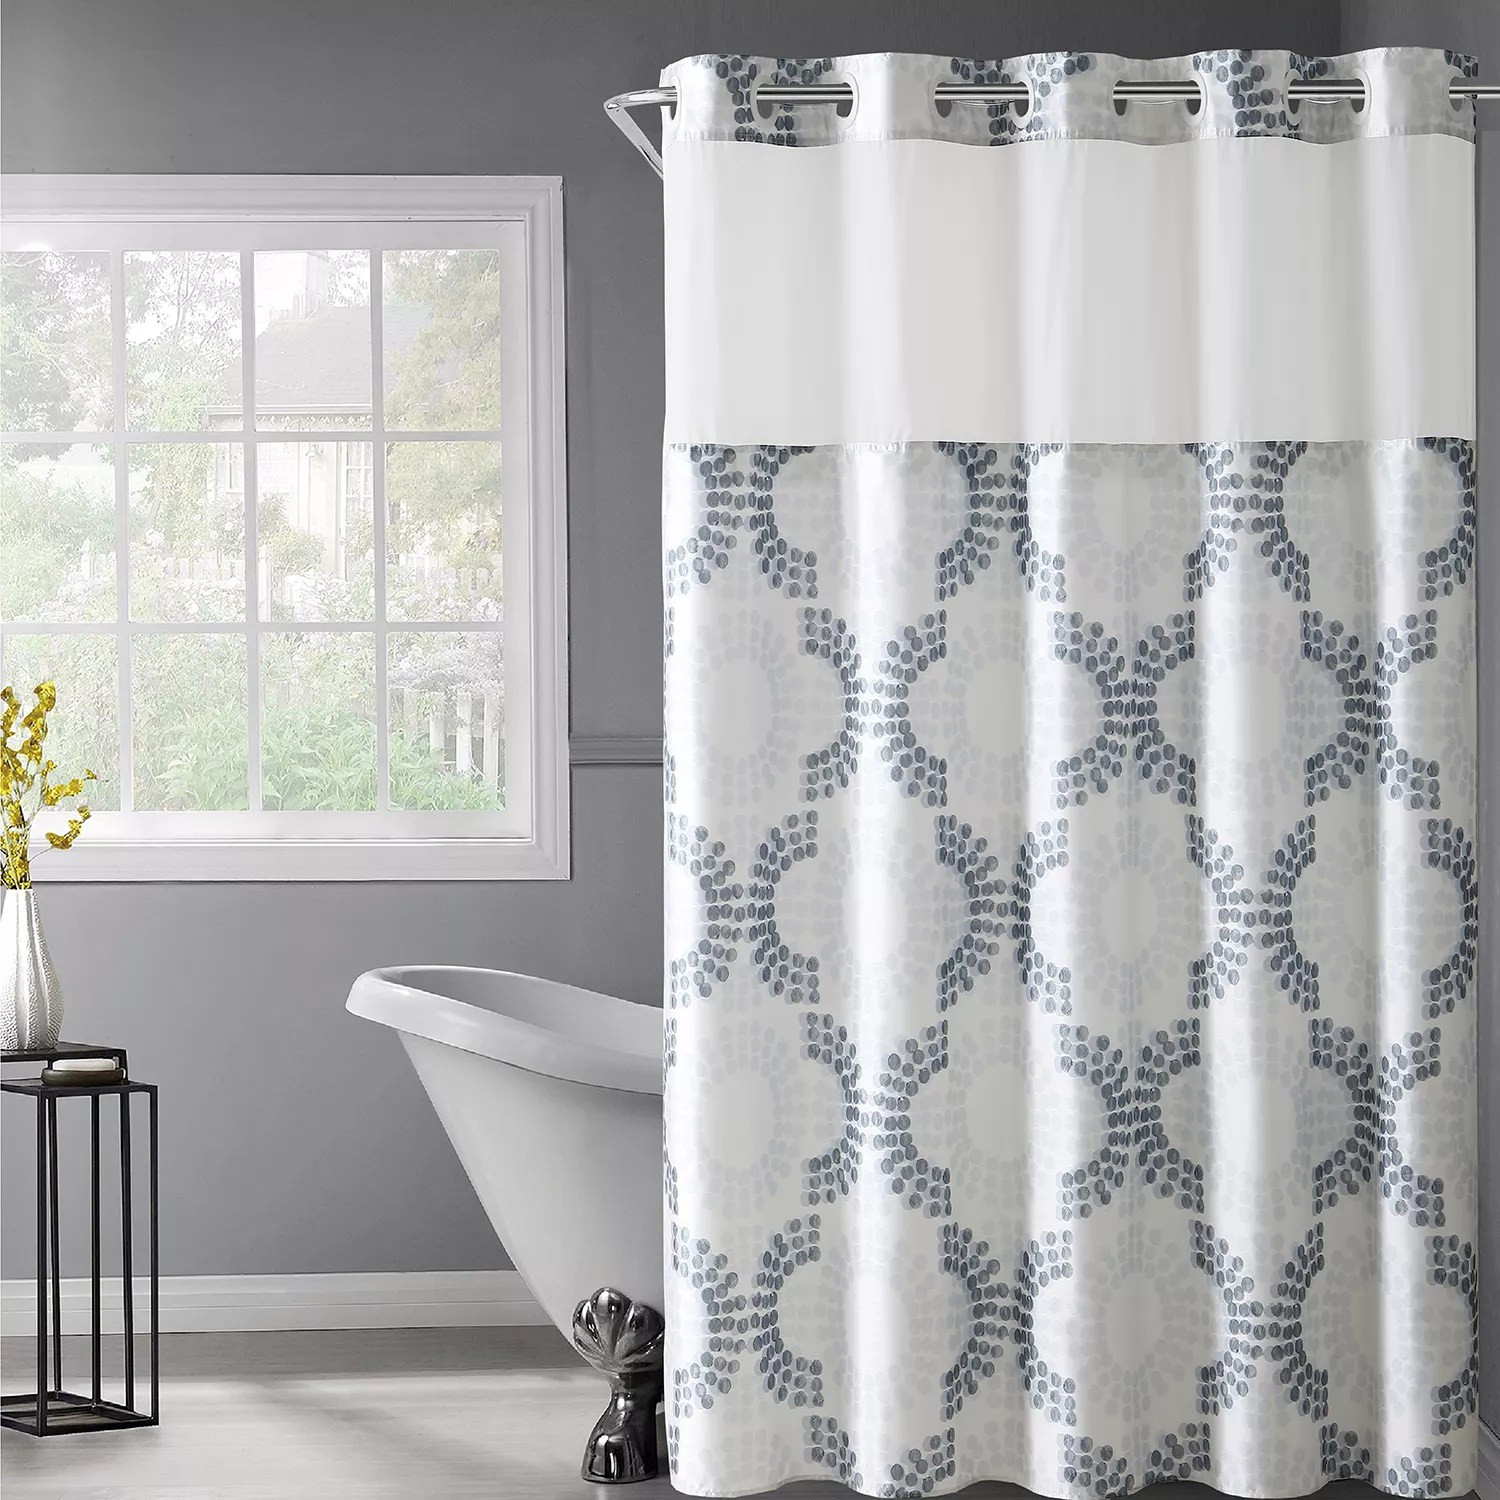 hookless stamped gate shower curtain snap in liner